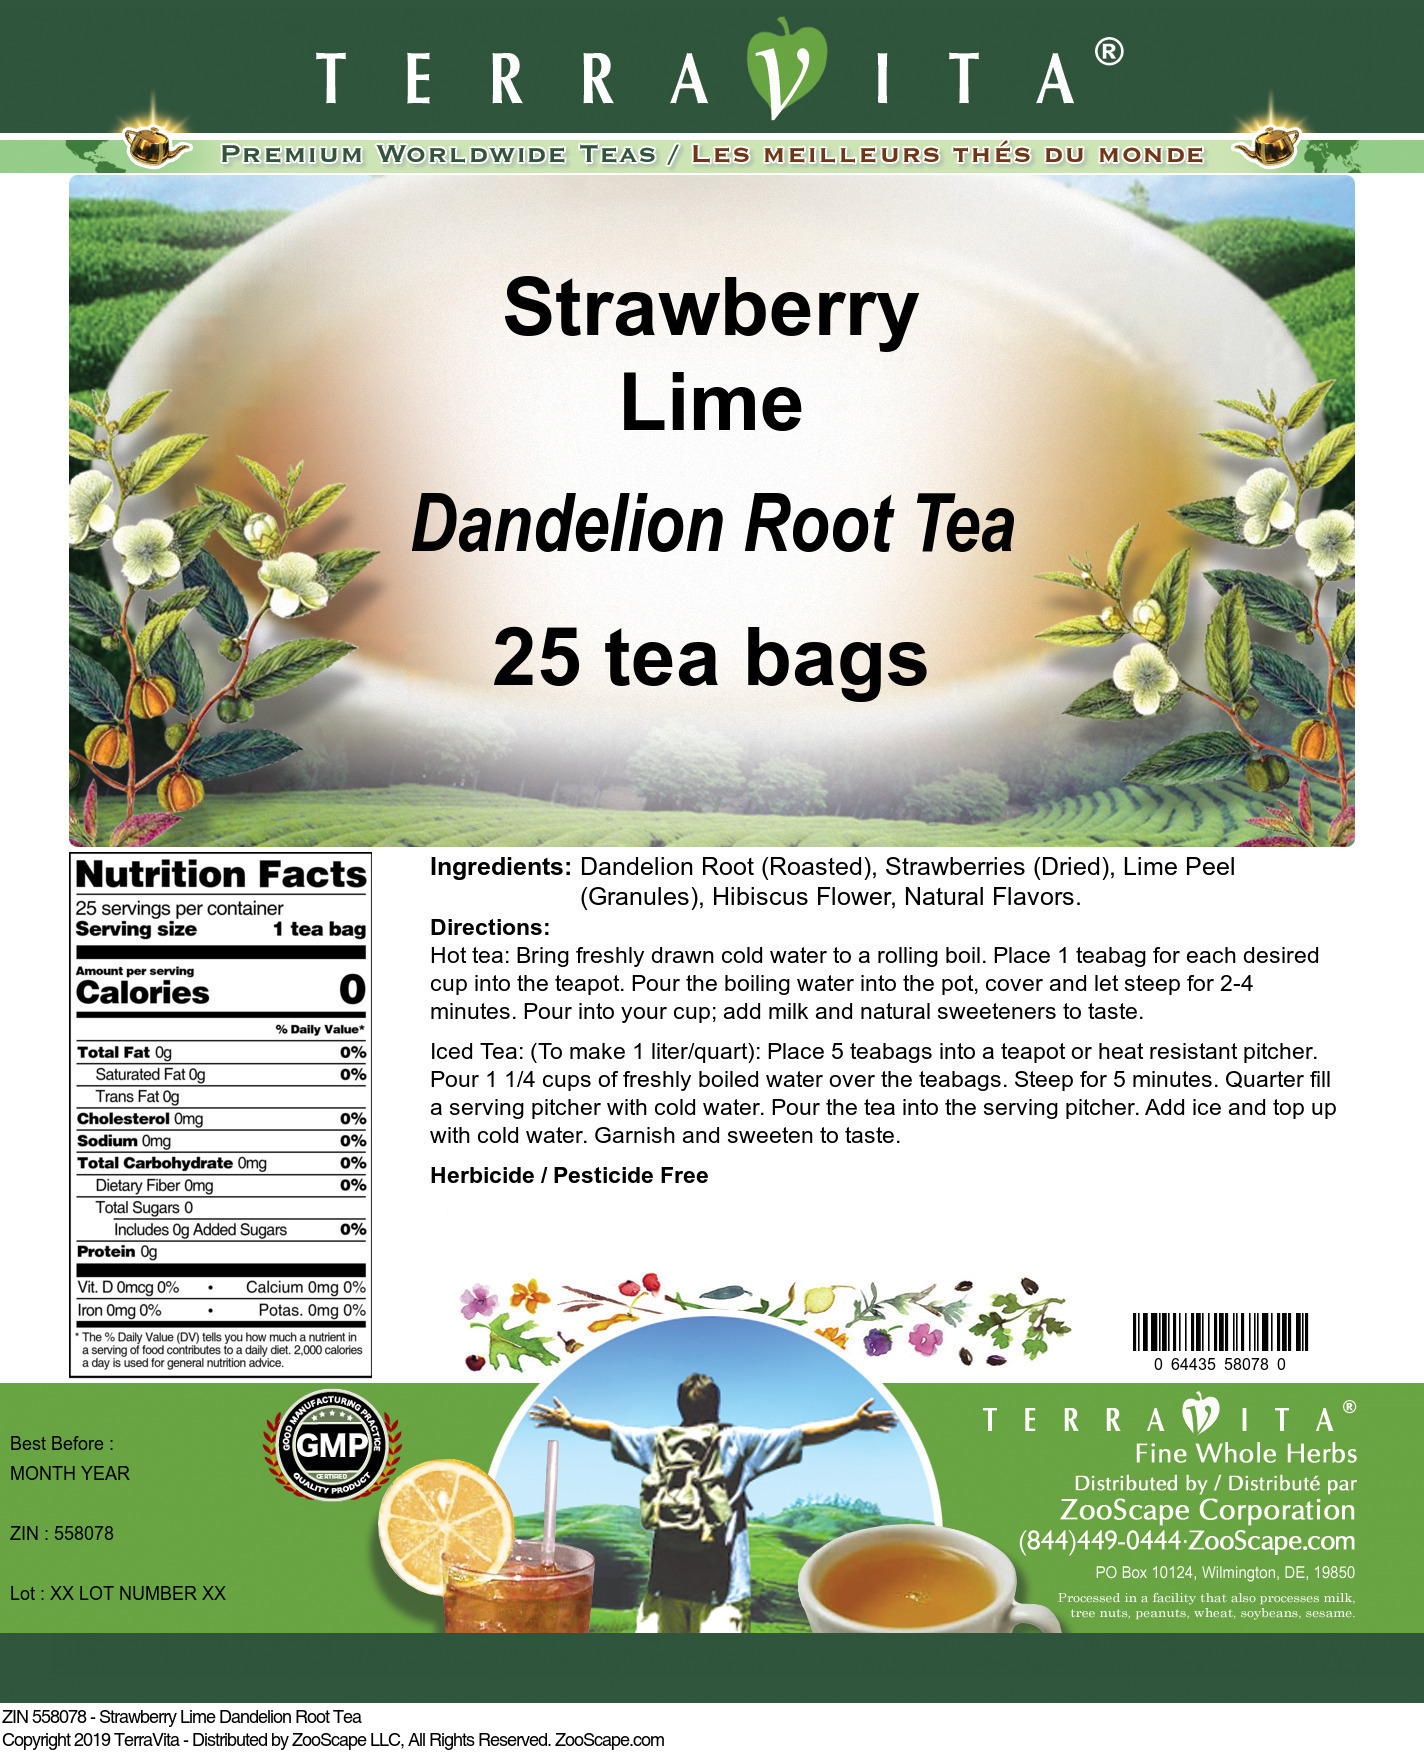 Strawberry Lime Dandelion Root